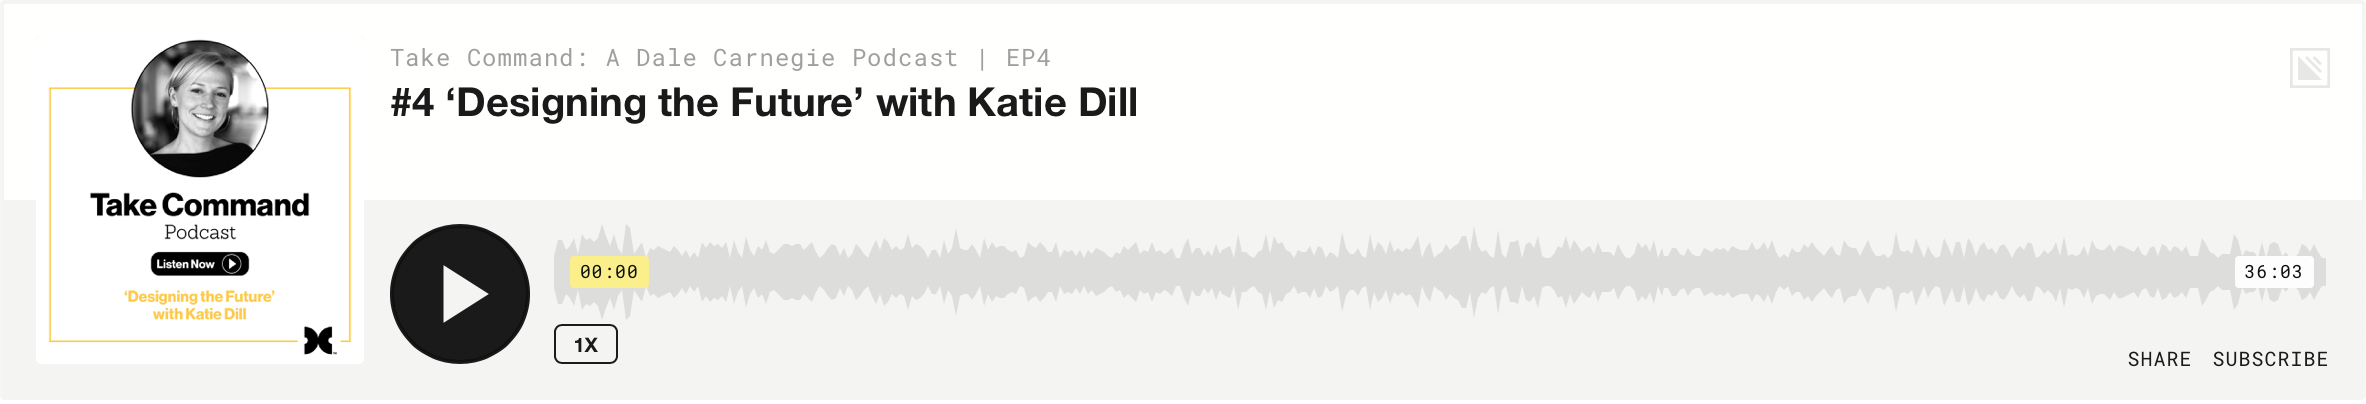 Take Command: Katie Dill - Episode 4